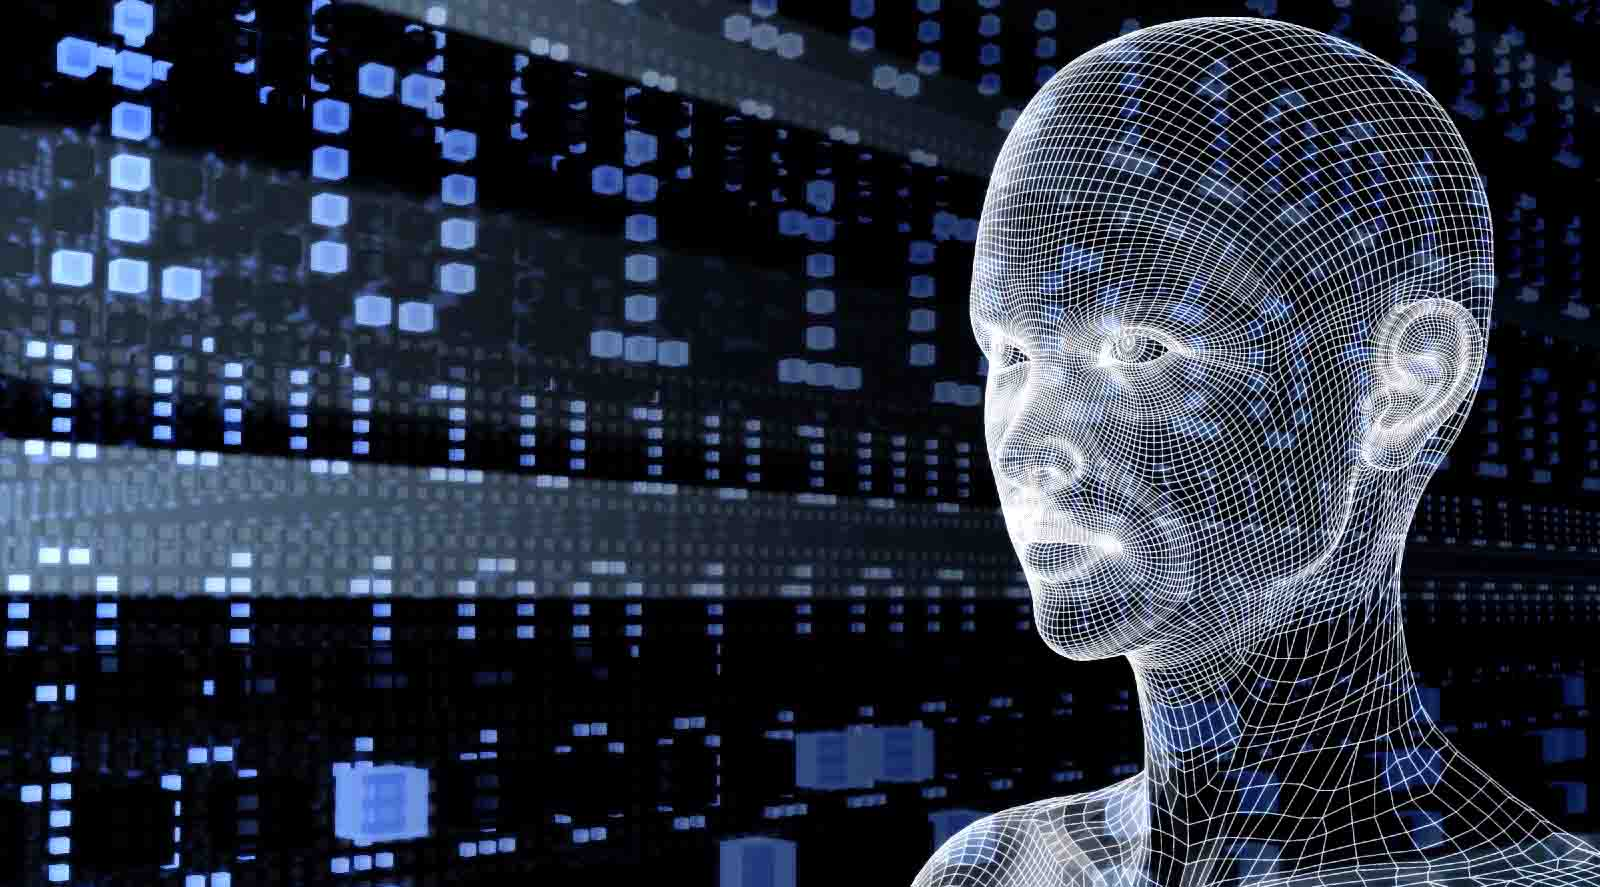 Intelligenza artificiale, il software che legge la storia